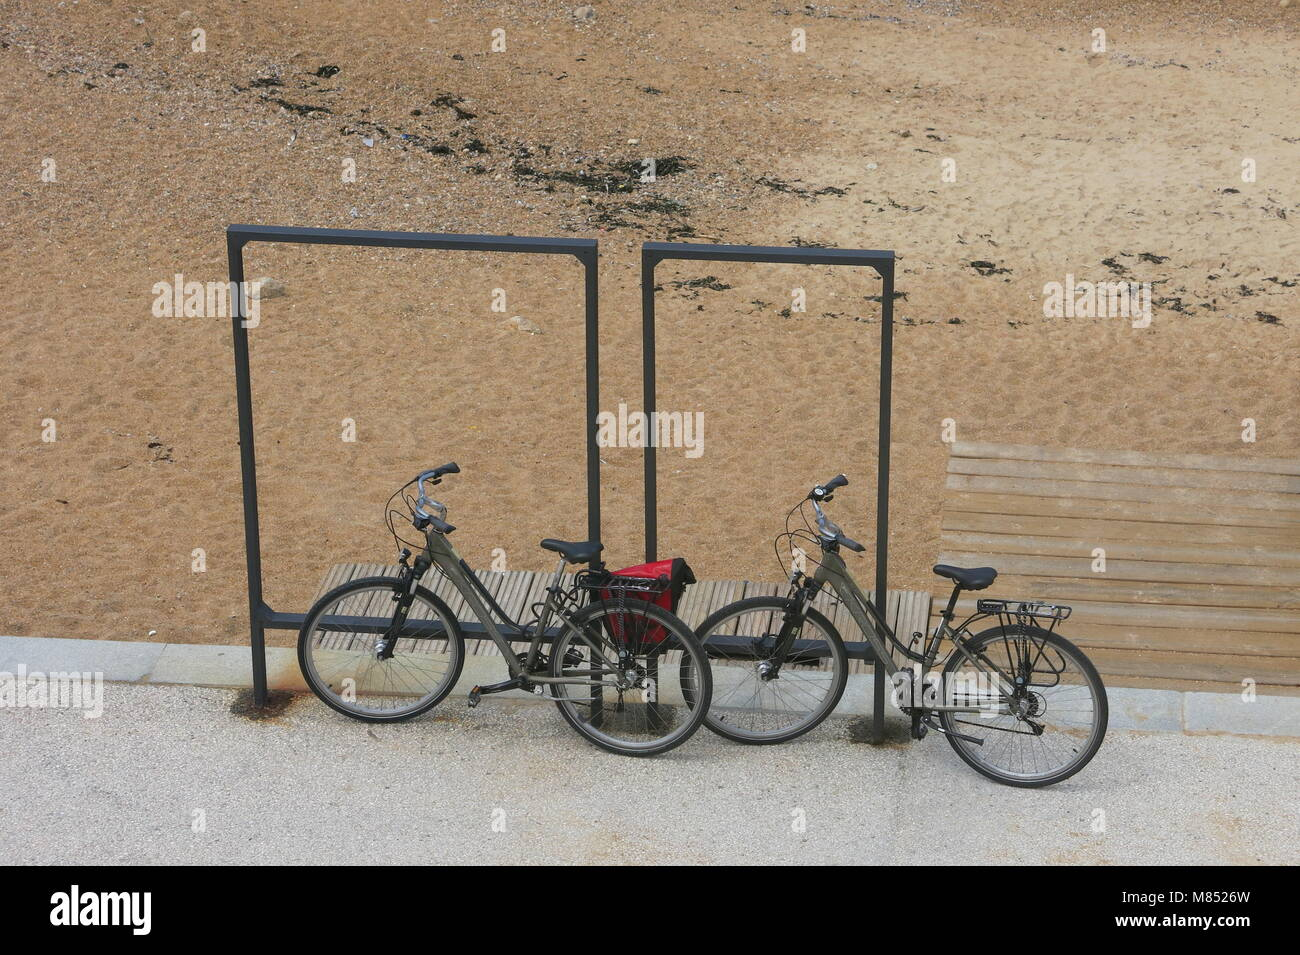 two bicycles parked against Stock Photos & two bicycles parked ...